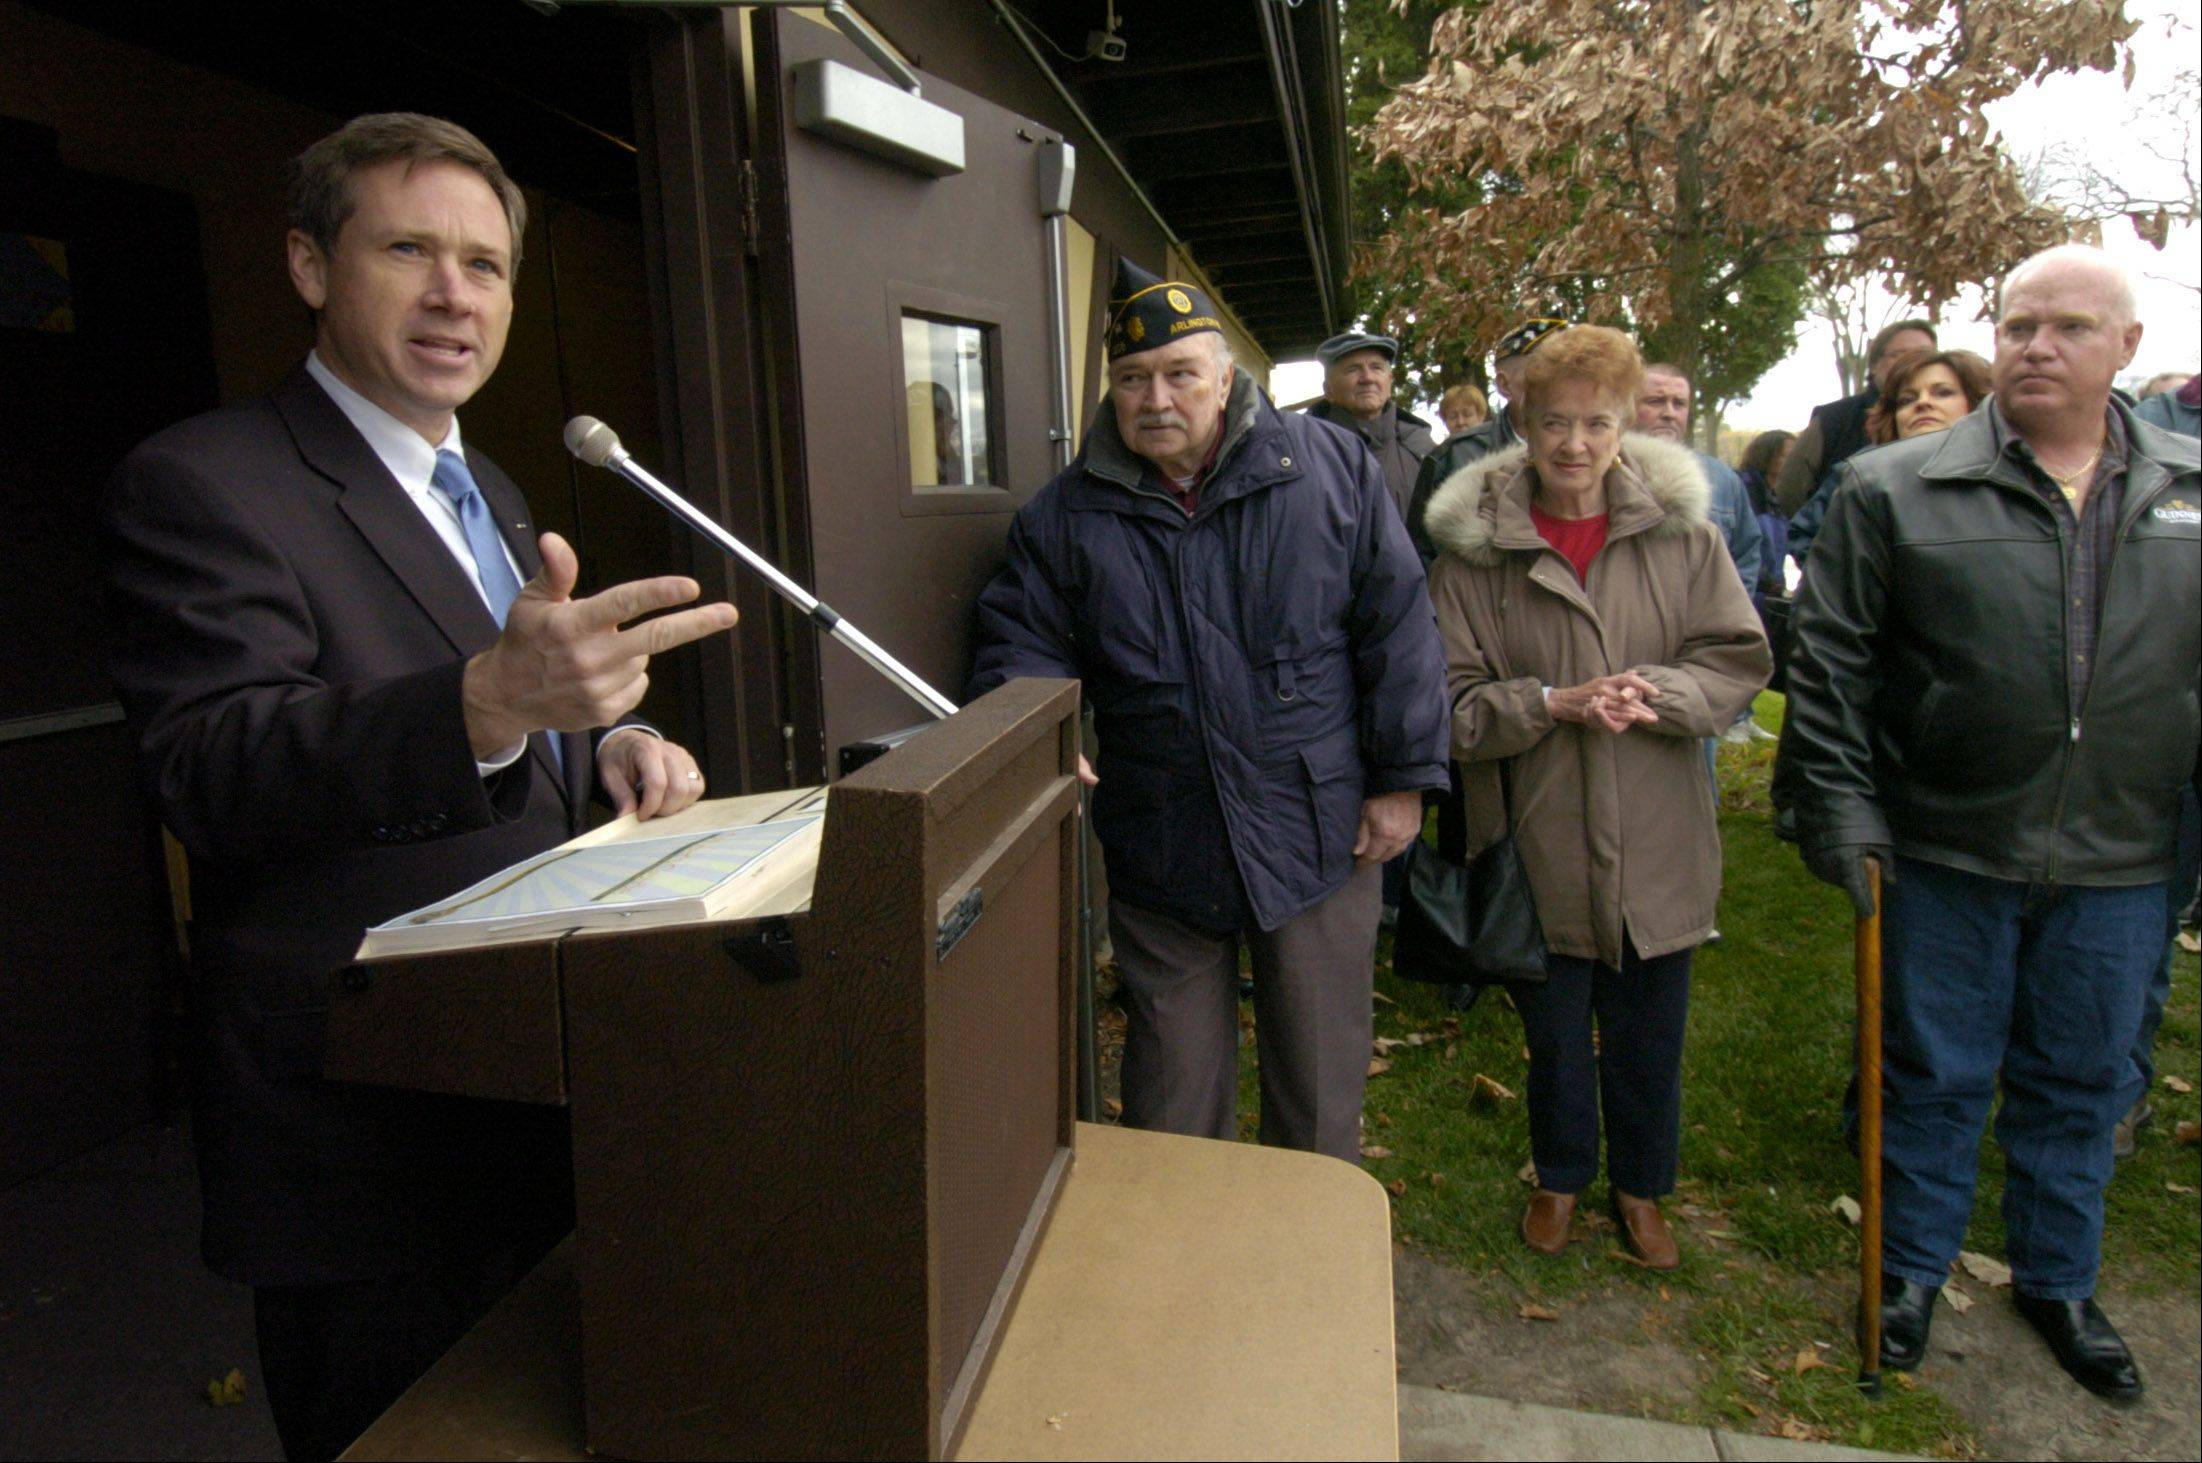 Congressman Mark Kirk addresses a Veterans Day gathering in Arlington Heights during healthier times back in 2004.